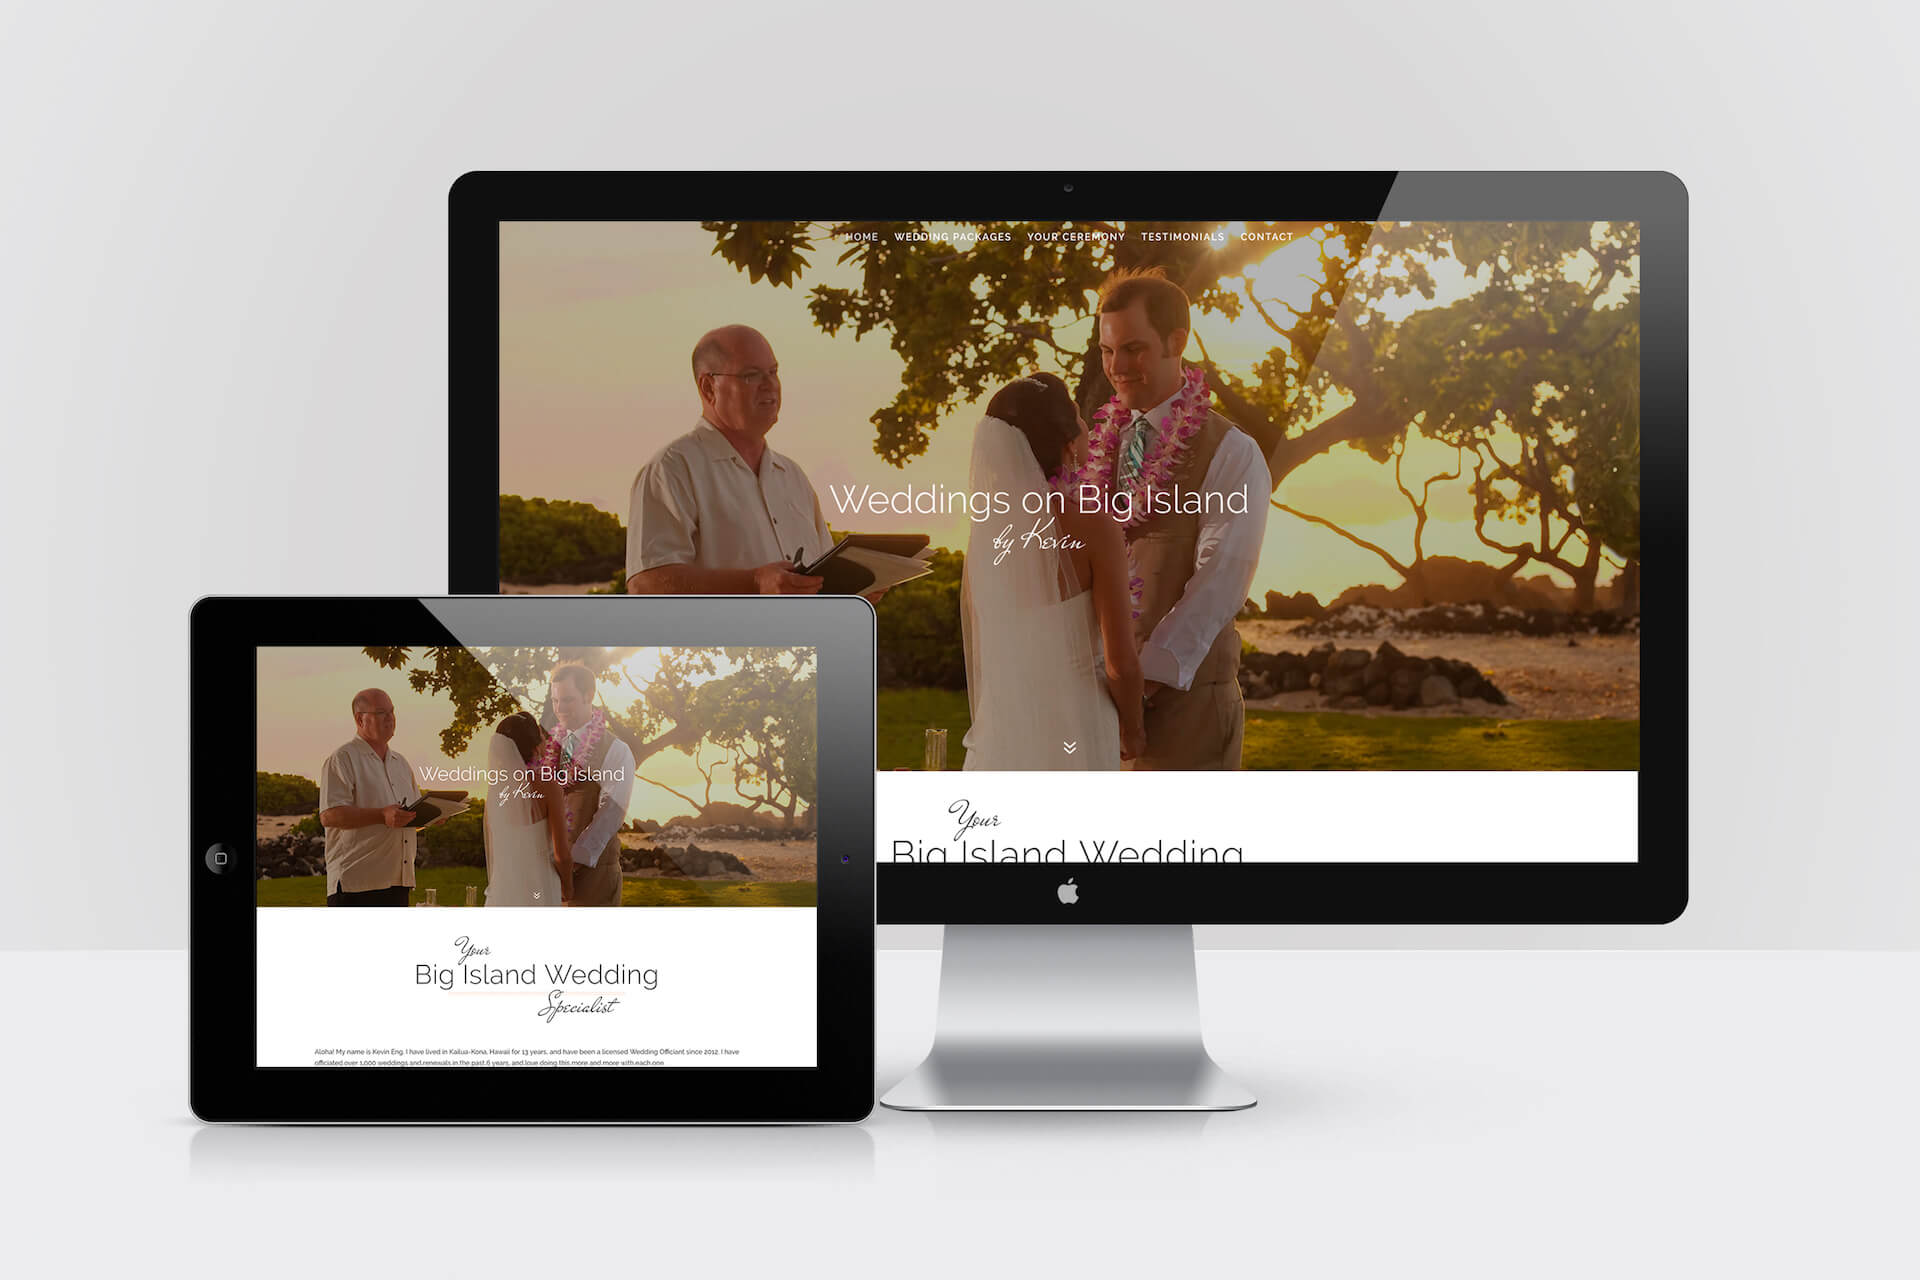 Weddings on Big Island by Kevin — Responsive Website Design